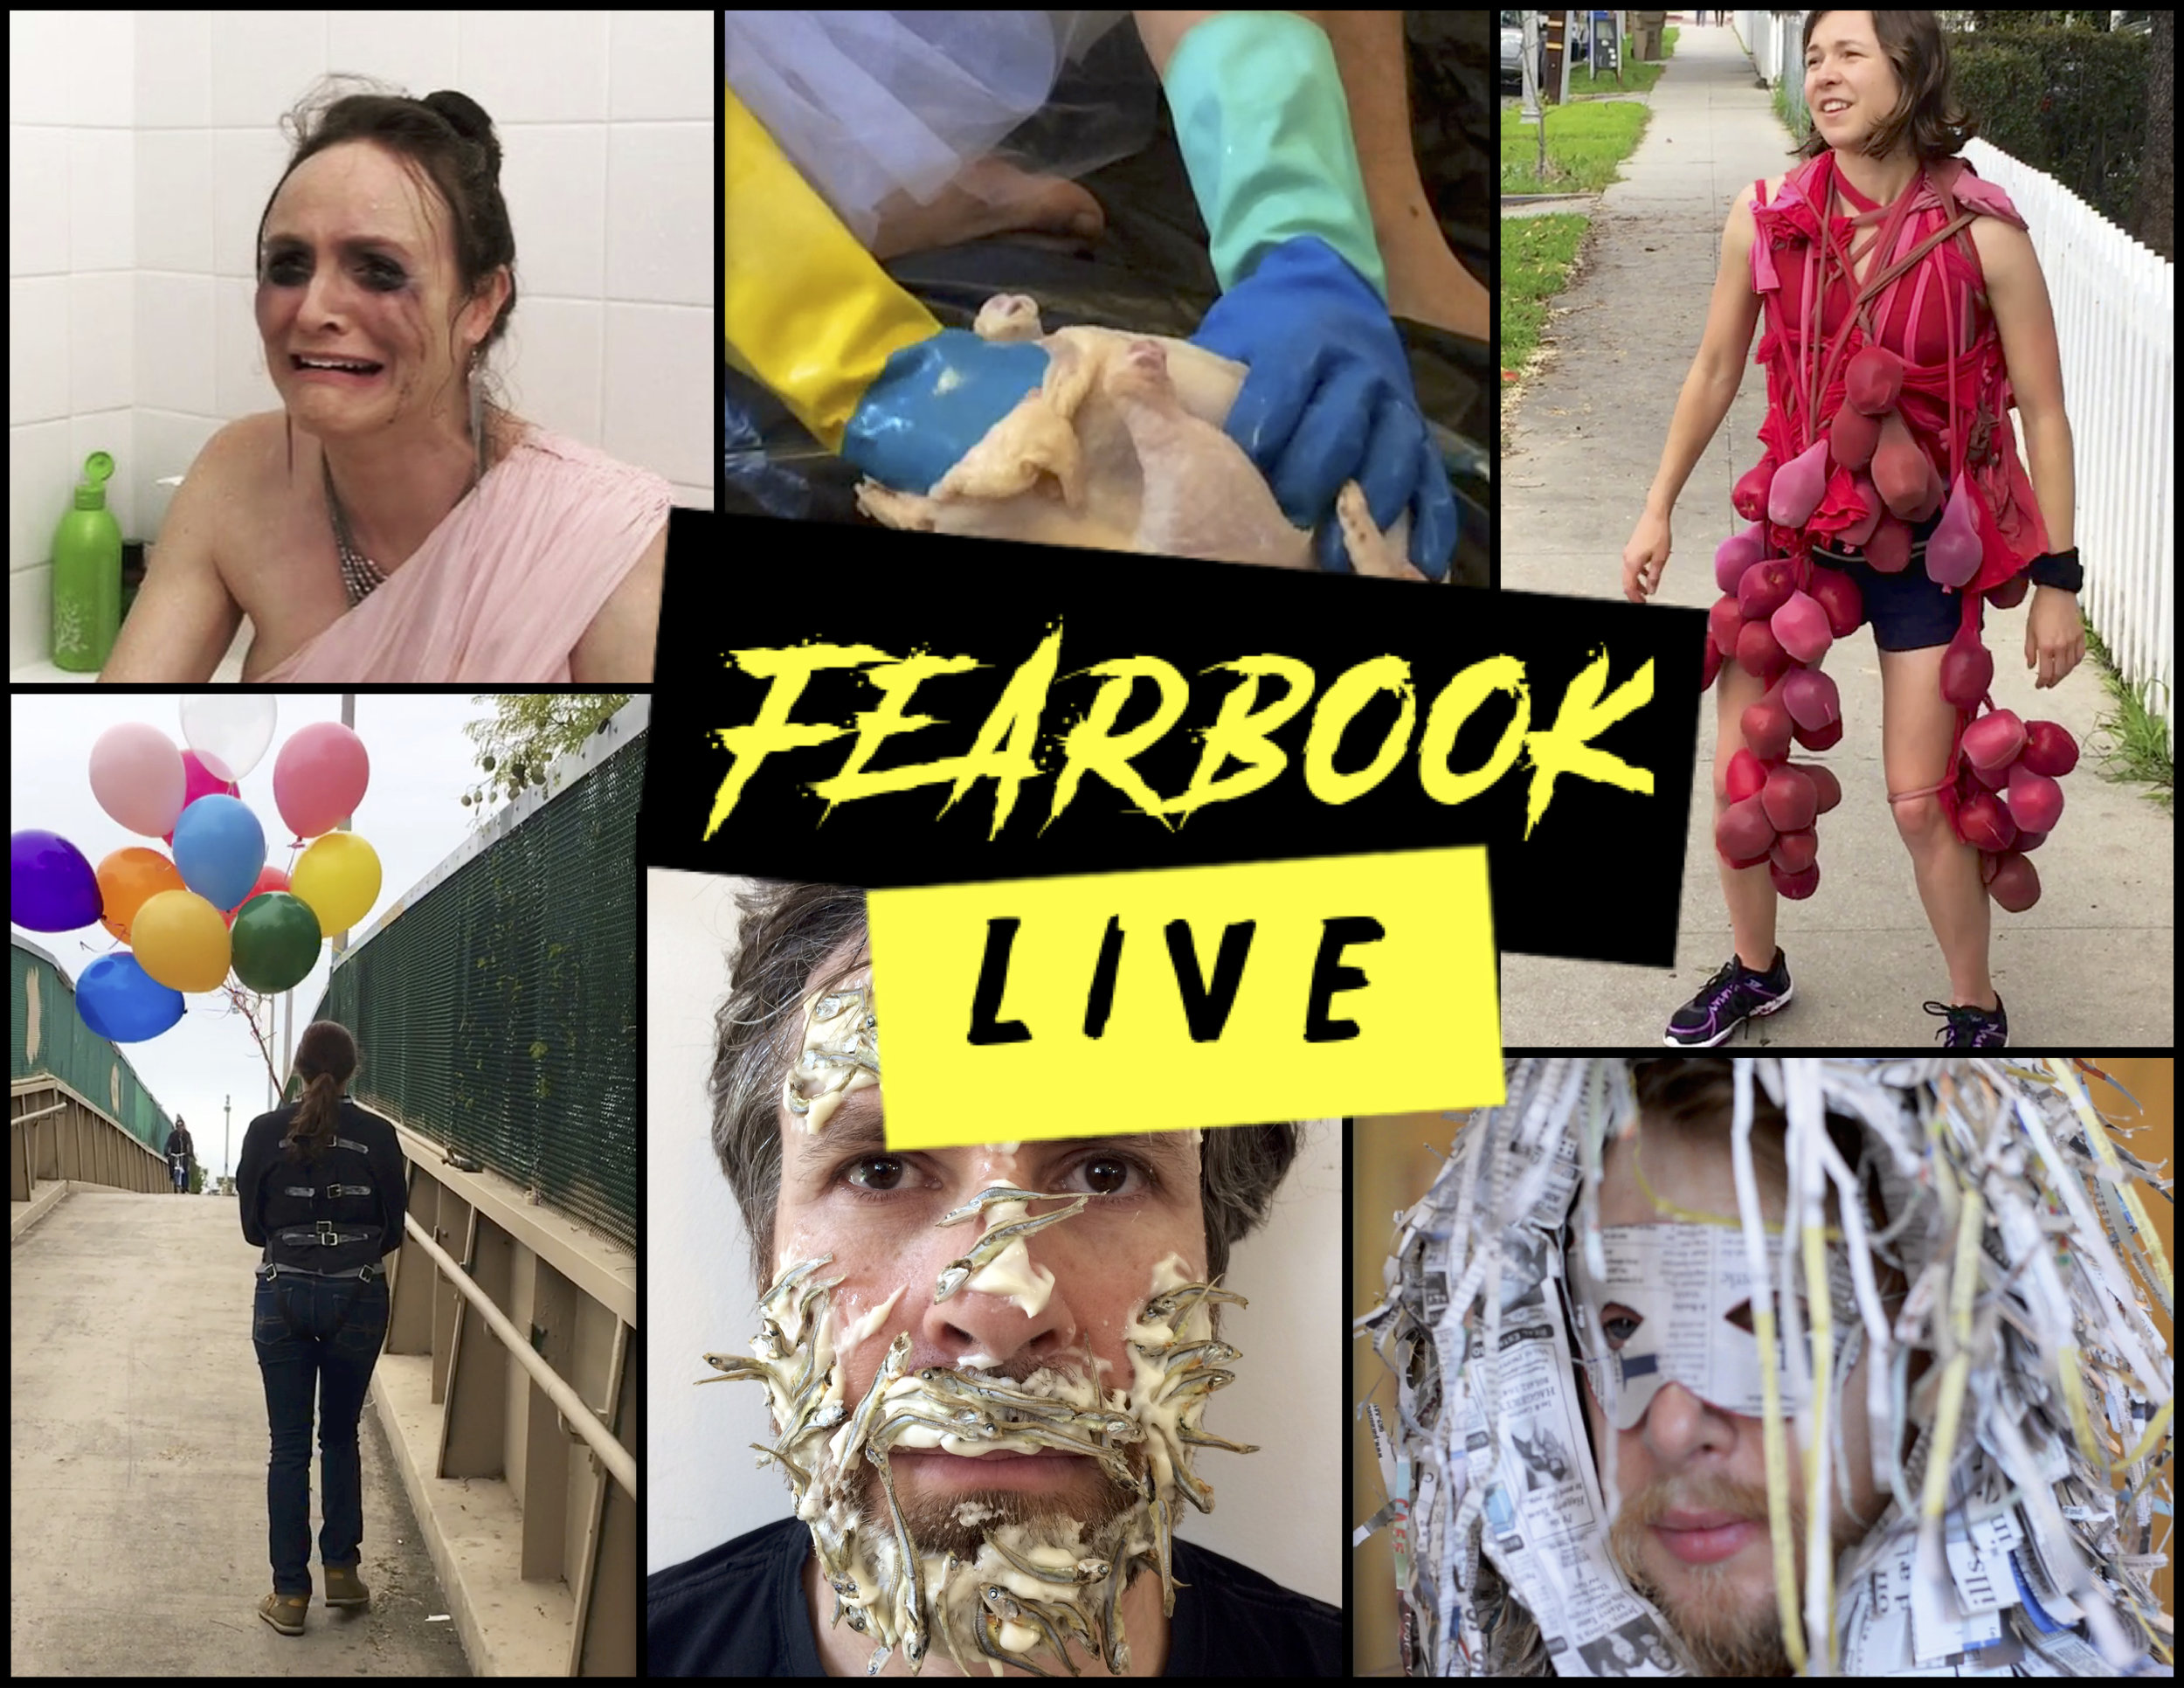 Fearbook Live - Fearbook Liveis an internet-based art adventure gameshow created by Ally Bortolazzo and Elizabeth Folk. Variables are chosen by an online audience, contestants have 24 hours to complete a work of art. The ideation process, fabrication, and unveiling of the final piece is live streamed here. View trailer here.